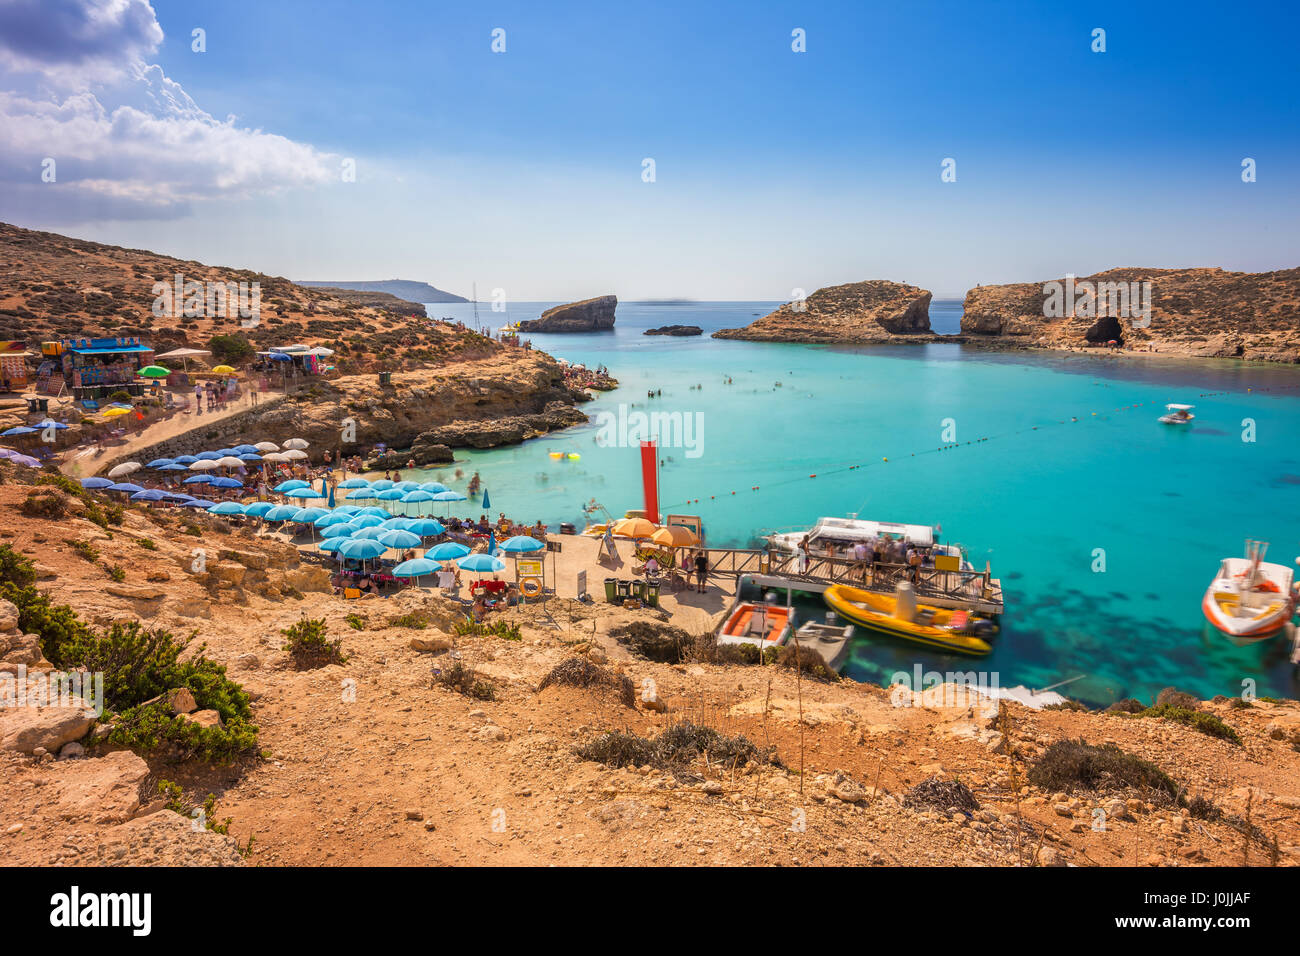 Comino, Malta - Tourists crowd at Blue Lagoon to enjoy the clear turquoise water on a sunny summer day with clear - Stock Image